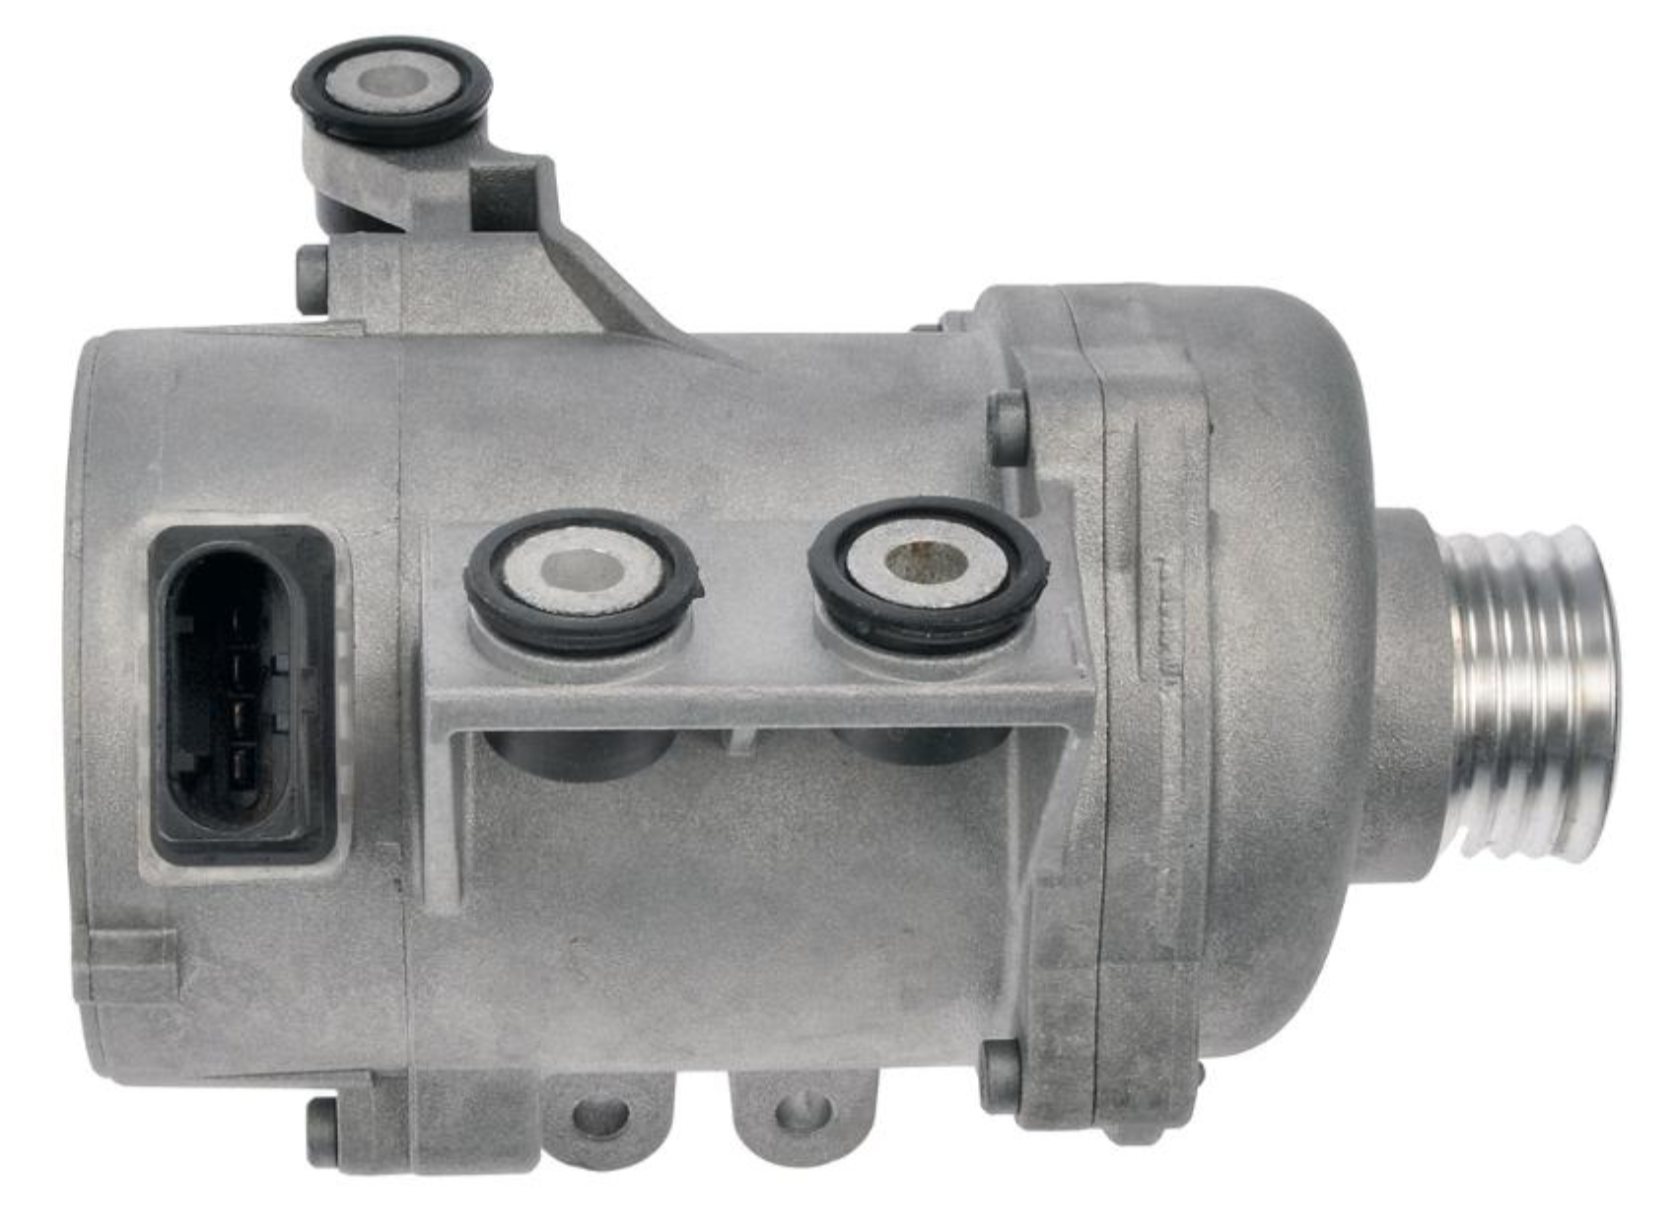 Electric coolant pump for automotive application.